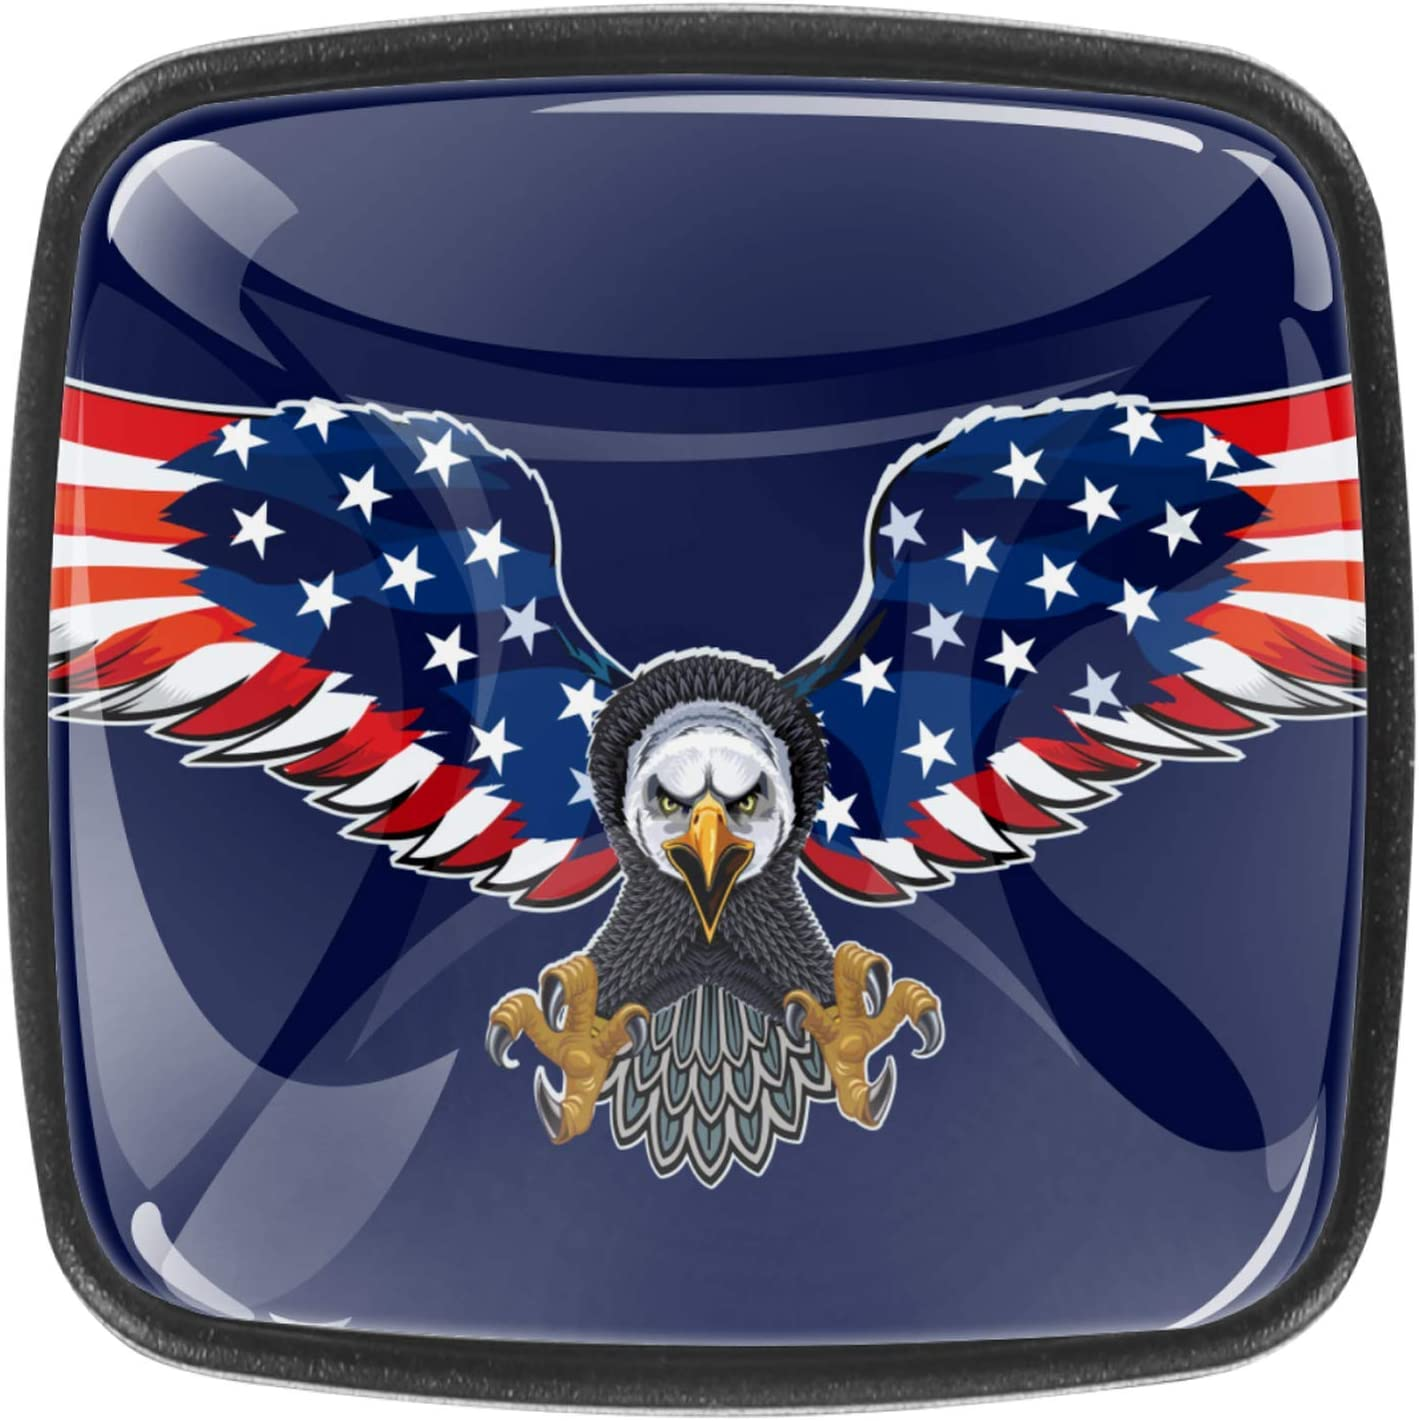 Kitchen Cabinet Knobs - American Eagle with USA Flags (2) - 1.18 Inch Round Drawer Handles - 4 Pack of Kitchen Cabinet Hardware